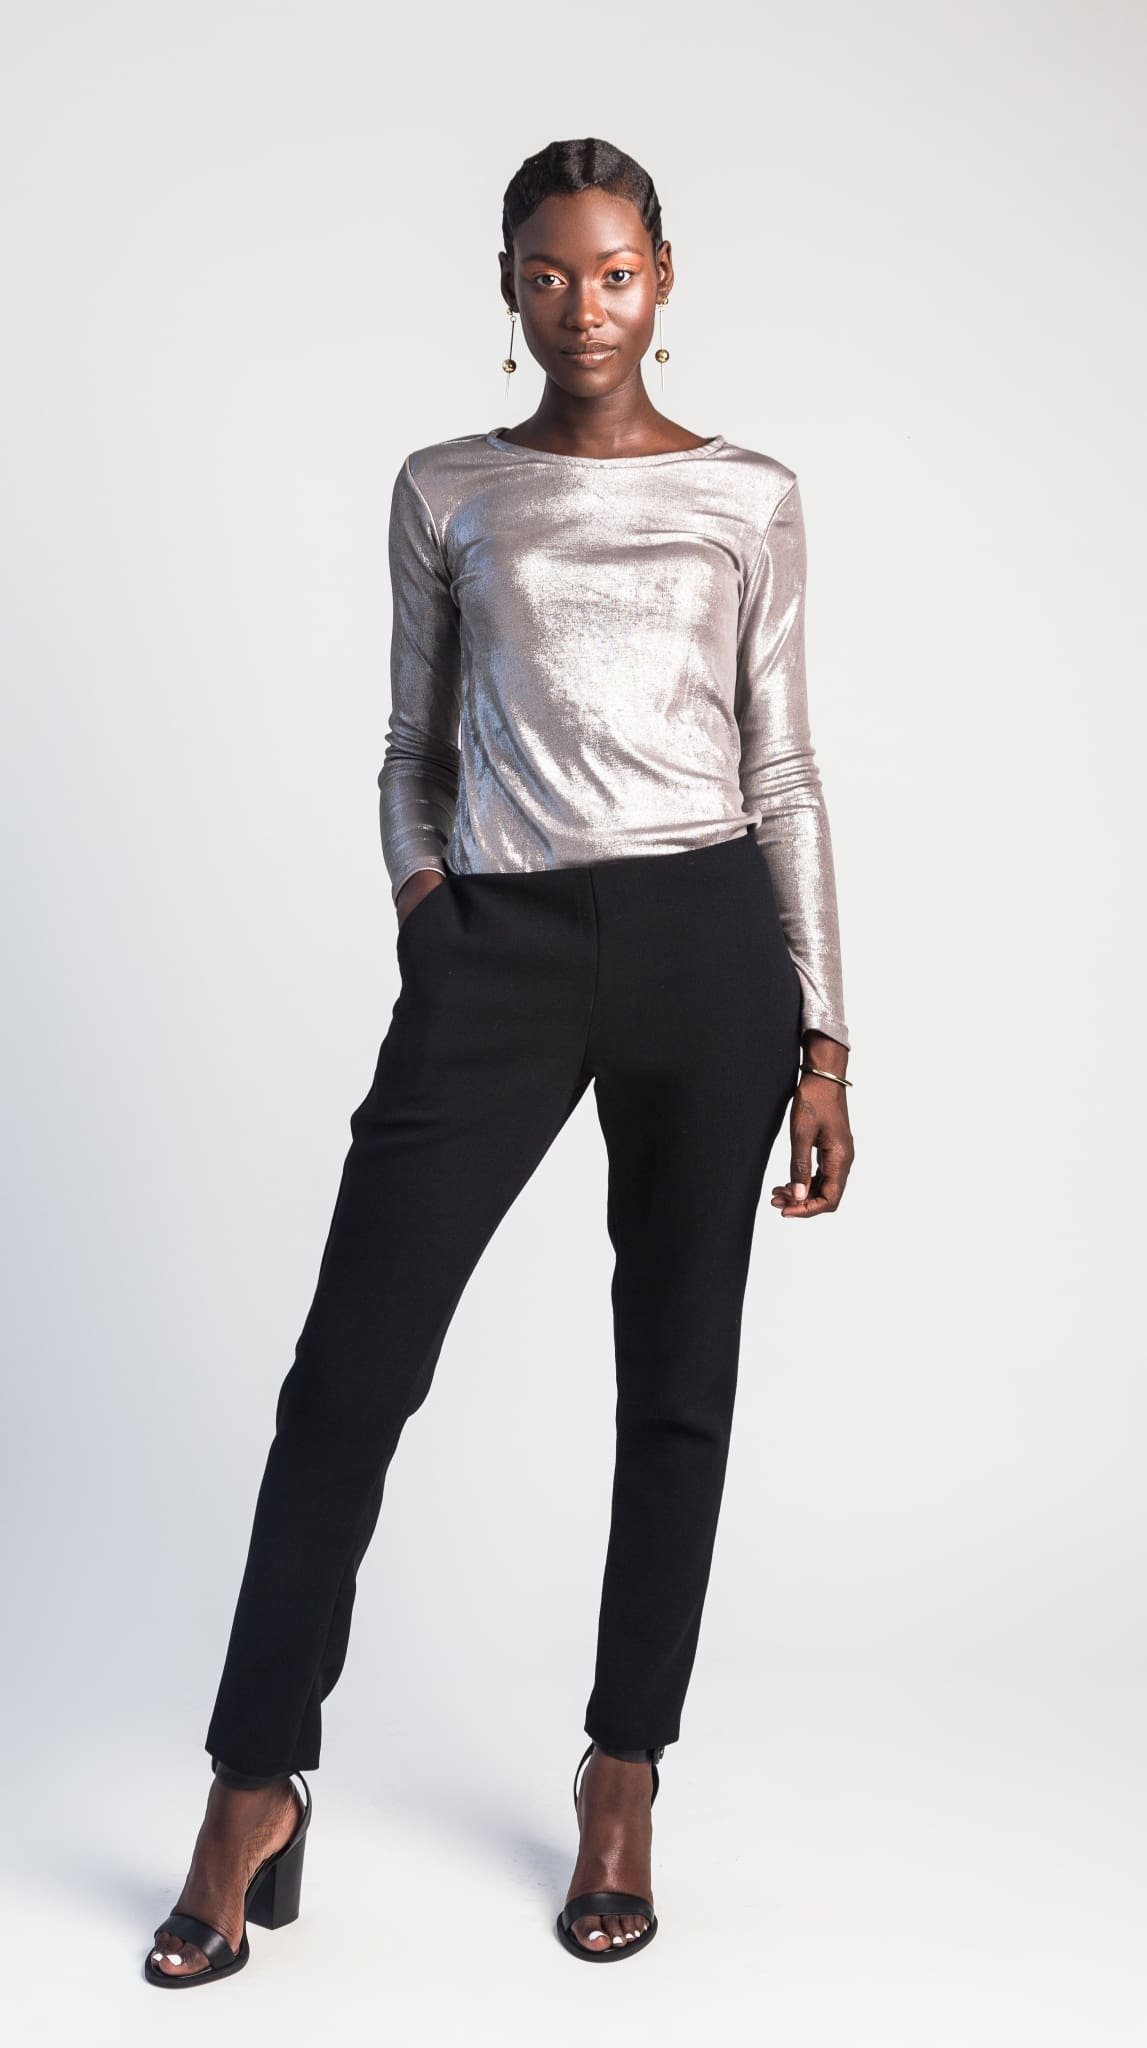 Luna Metallic Silver Long Sleeve Top front by VARYFORM for Nineteenth Amendment